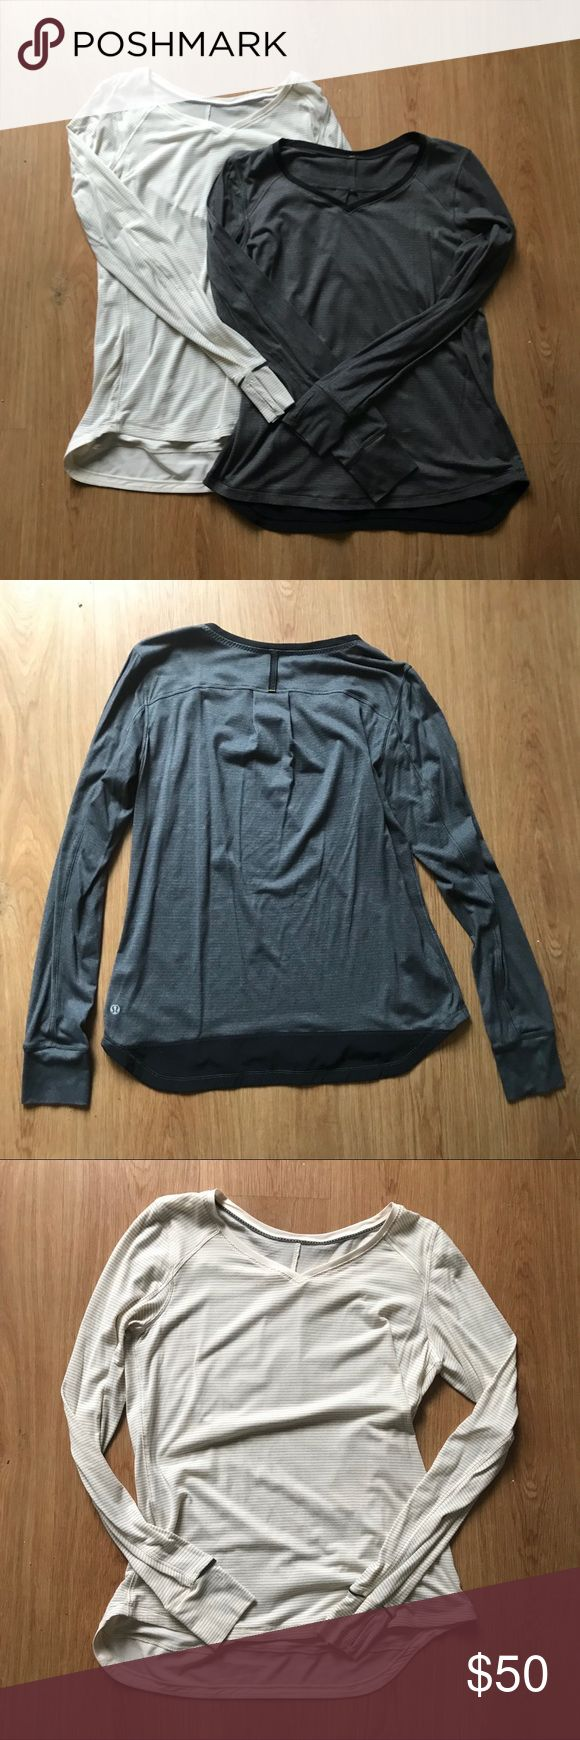 Bundle 2 Lululemon V neck LS Tops Bundle 2 Lululemon V neck Long sleep tops. Sweat wicking fabric, but great for layering. Thumb holes, excellent used condition. Minimal pilling (fabric shown in photos). No stains or rips. The back of the shirt on the bottom are reinforced as are most of the seams. Make an offer ❤️🔥 Save 20% on Bundles 👍🏻✌🏻❄️ lululemon athletica Tops Tees - Long Sleeve